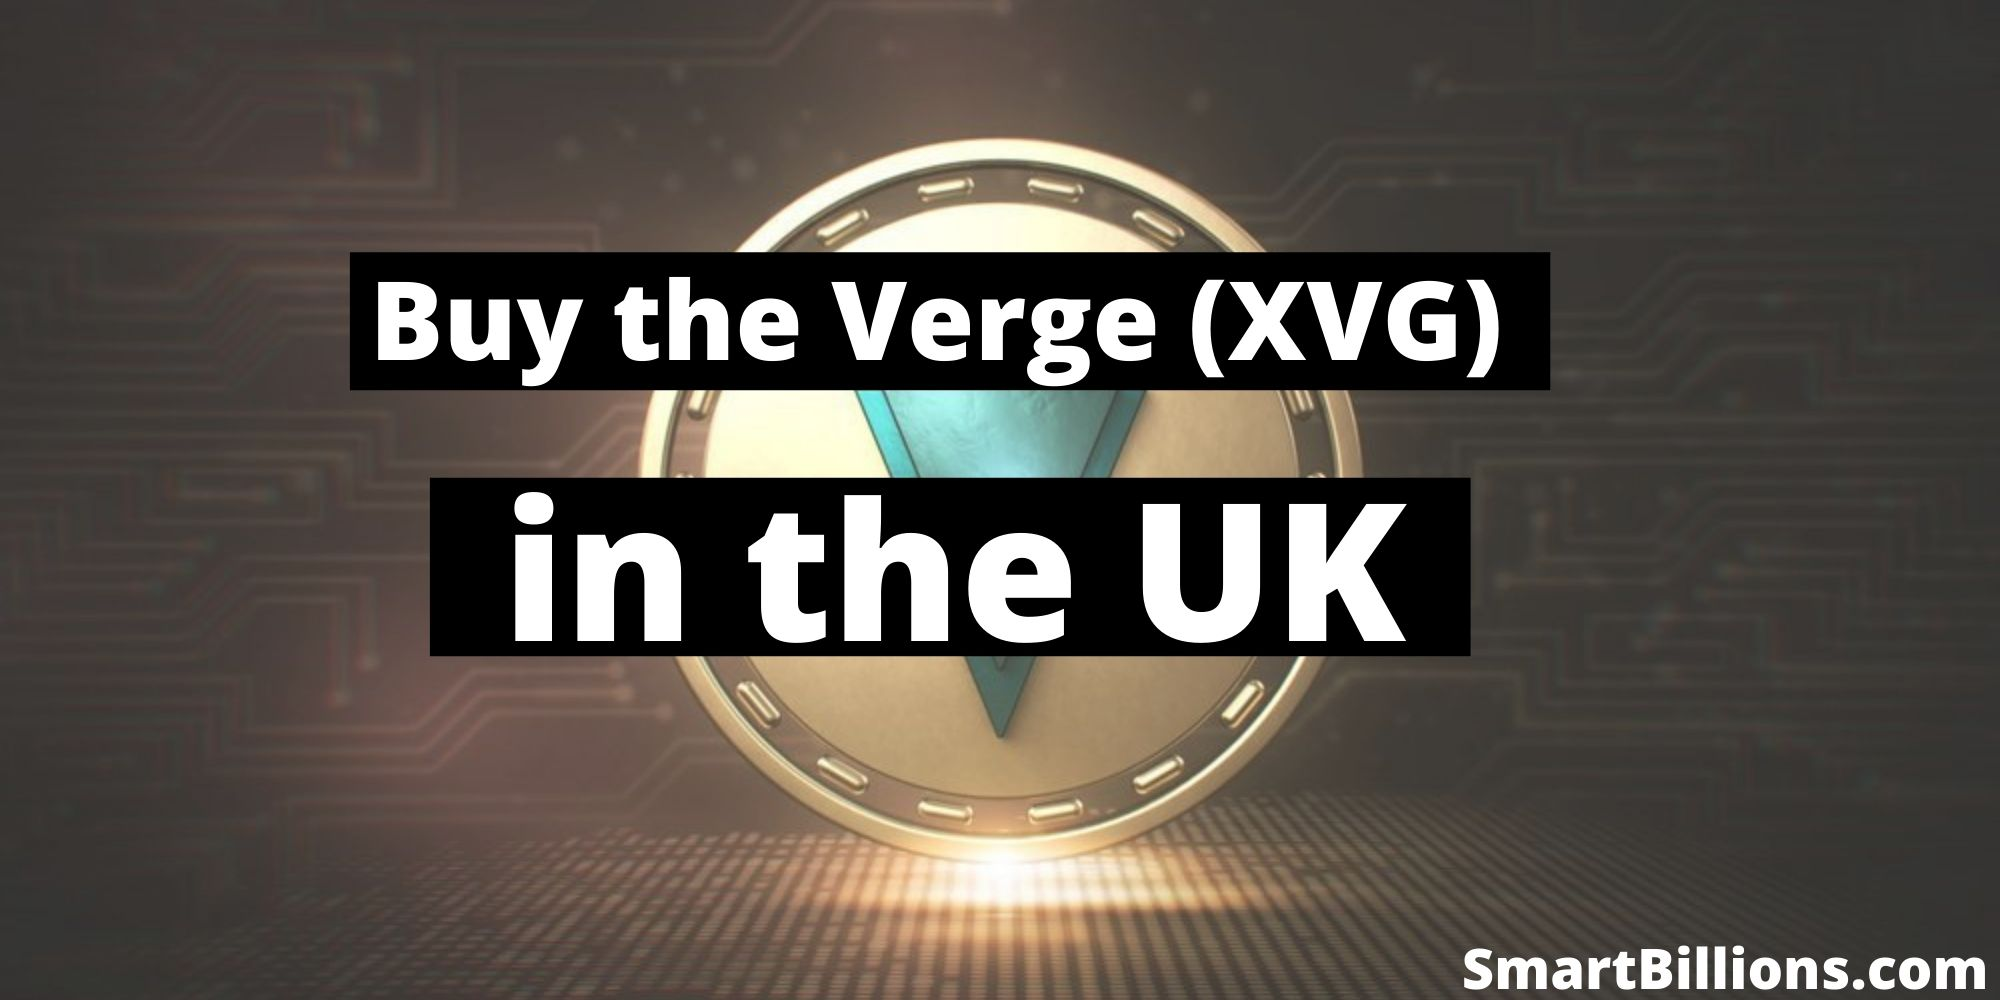 verge xvg cryptocurrency in the UK